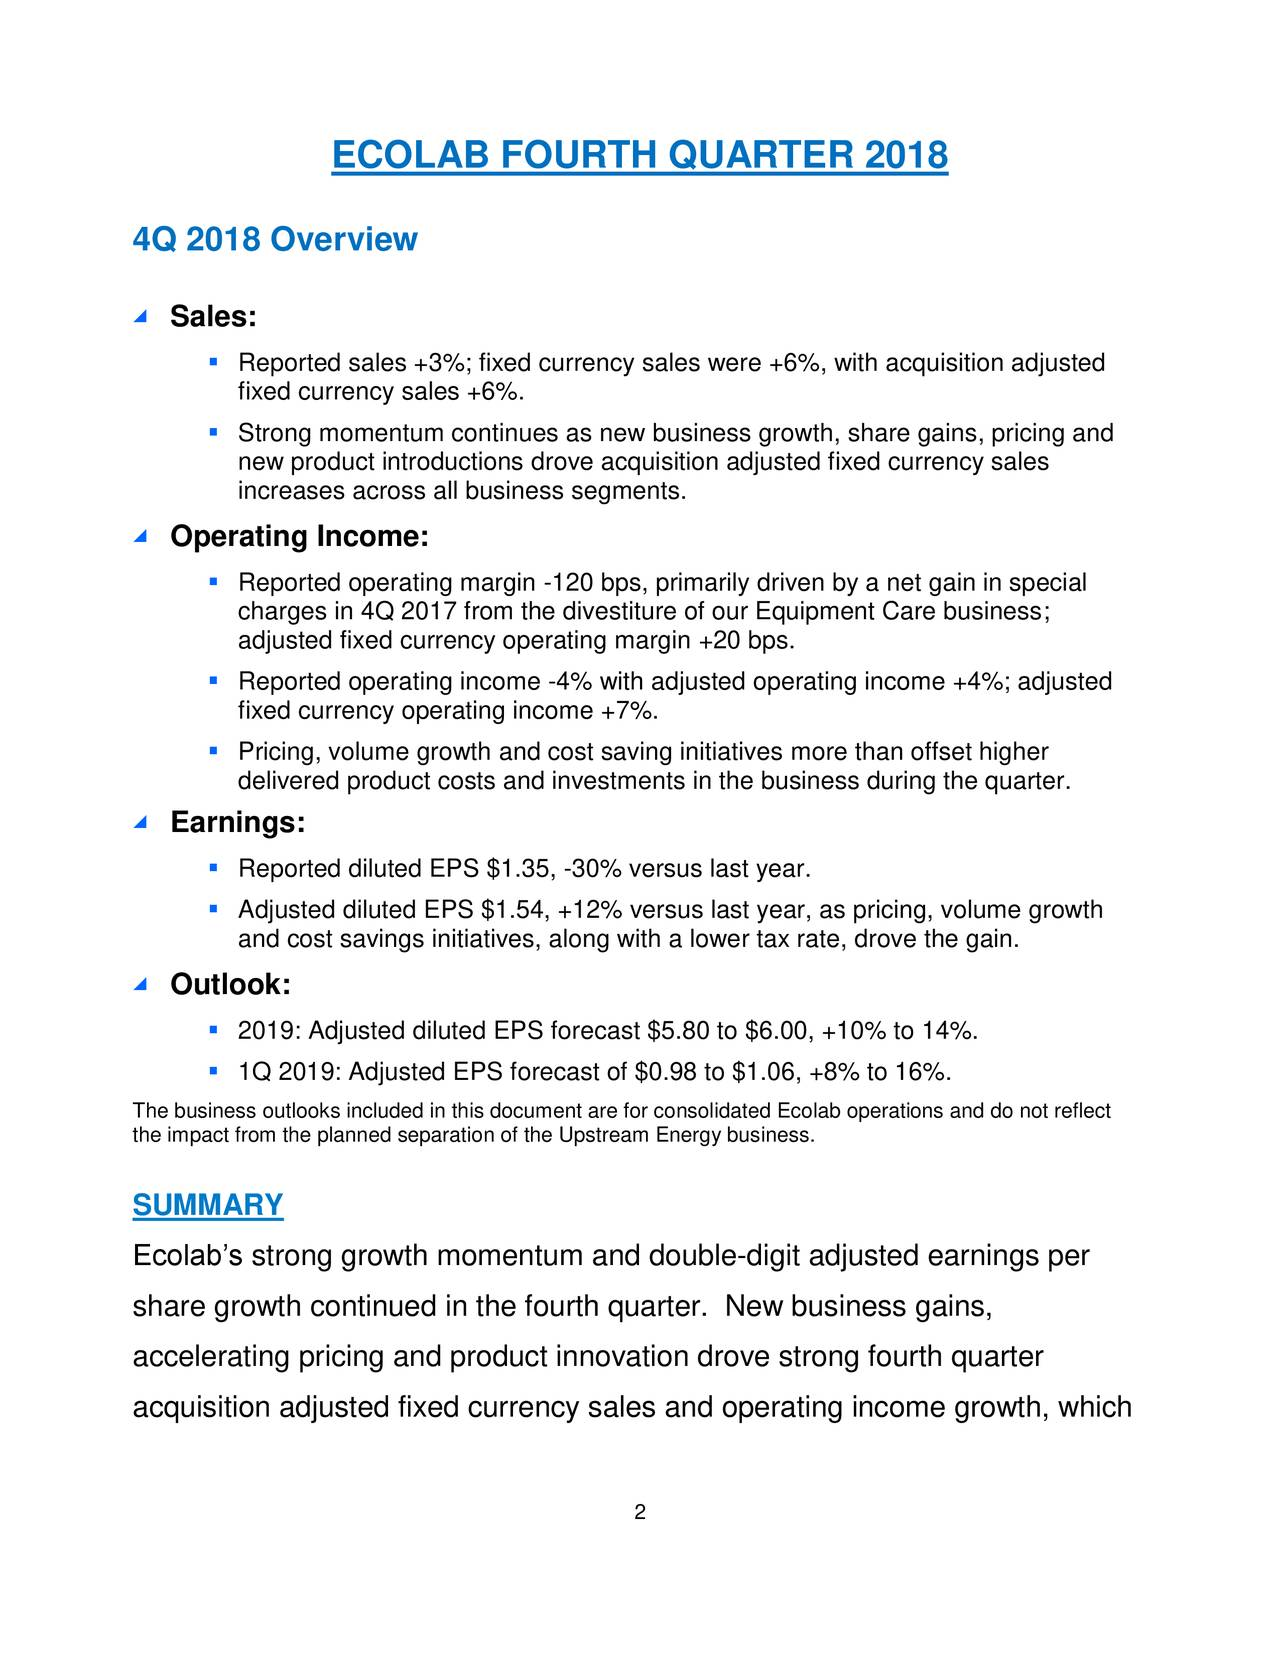 4Q 2018 Overview ◢ Sales: ▪ Reported sales +3%; fixed currency sales were +6%, with acquisition adjusted fixed currency sales +6%. ▪ Strong momentum continues as new business growth, share gains, pricing and new product introductions drove acquisition adjusted fixed currency sales increases across all business segments. ◢ Operating Income: ▪ Reported operating margin -120 bps, primarily driven by a net gain in special charges in 4Q 2017 from the divestiture of our Equipment Care business; adjusted fixed currency operating margin +20 bps. ▪ Reported operating income -4% with adjusted operating income +4%; adjusted fixed currency operating income +7%. ▪ Pricing, volume growth and cost saving initiatives more than offset higher delivered product costs and investments in the business during the quarter. ◢ Earnings: ▪ Reported diluted EPS $1.35, -30% versus last year. ▪ Adjusted diluted EPS $1.54, +12% versus last year, as pricing, volume growth and cost savings initiatives, along with a lower tax rate, drove the gain. ◢ Outlook: ▪ 2019: Adjusted diluted EPS forecast $5.80 to $6.00, +10% to 14%. ▪ 1Q 2019: Adjusted EPS forecast of $0.98 to $1.06, +8% to 16%. the impact from the planned separation of the Upstream Energy business.olab operations and do not reflect SUMMARY Ecolab's strong growth momentum and double-digit adjusted earnings per share growth continued in the fourth quarter. New business gains, accelerating pricing and product innovation drove strong fourth quarter acquisition adjusted fixed currency sales and operating income growth, which 2